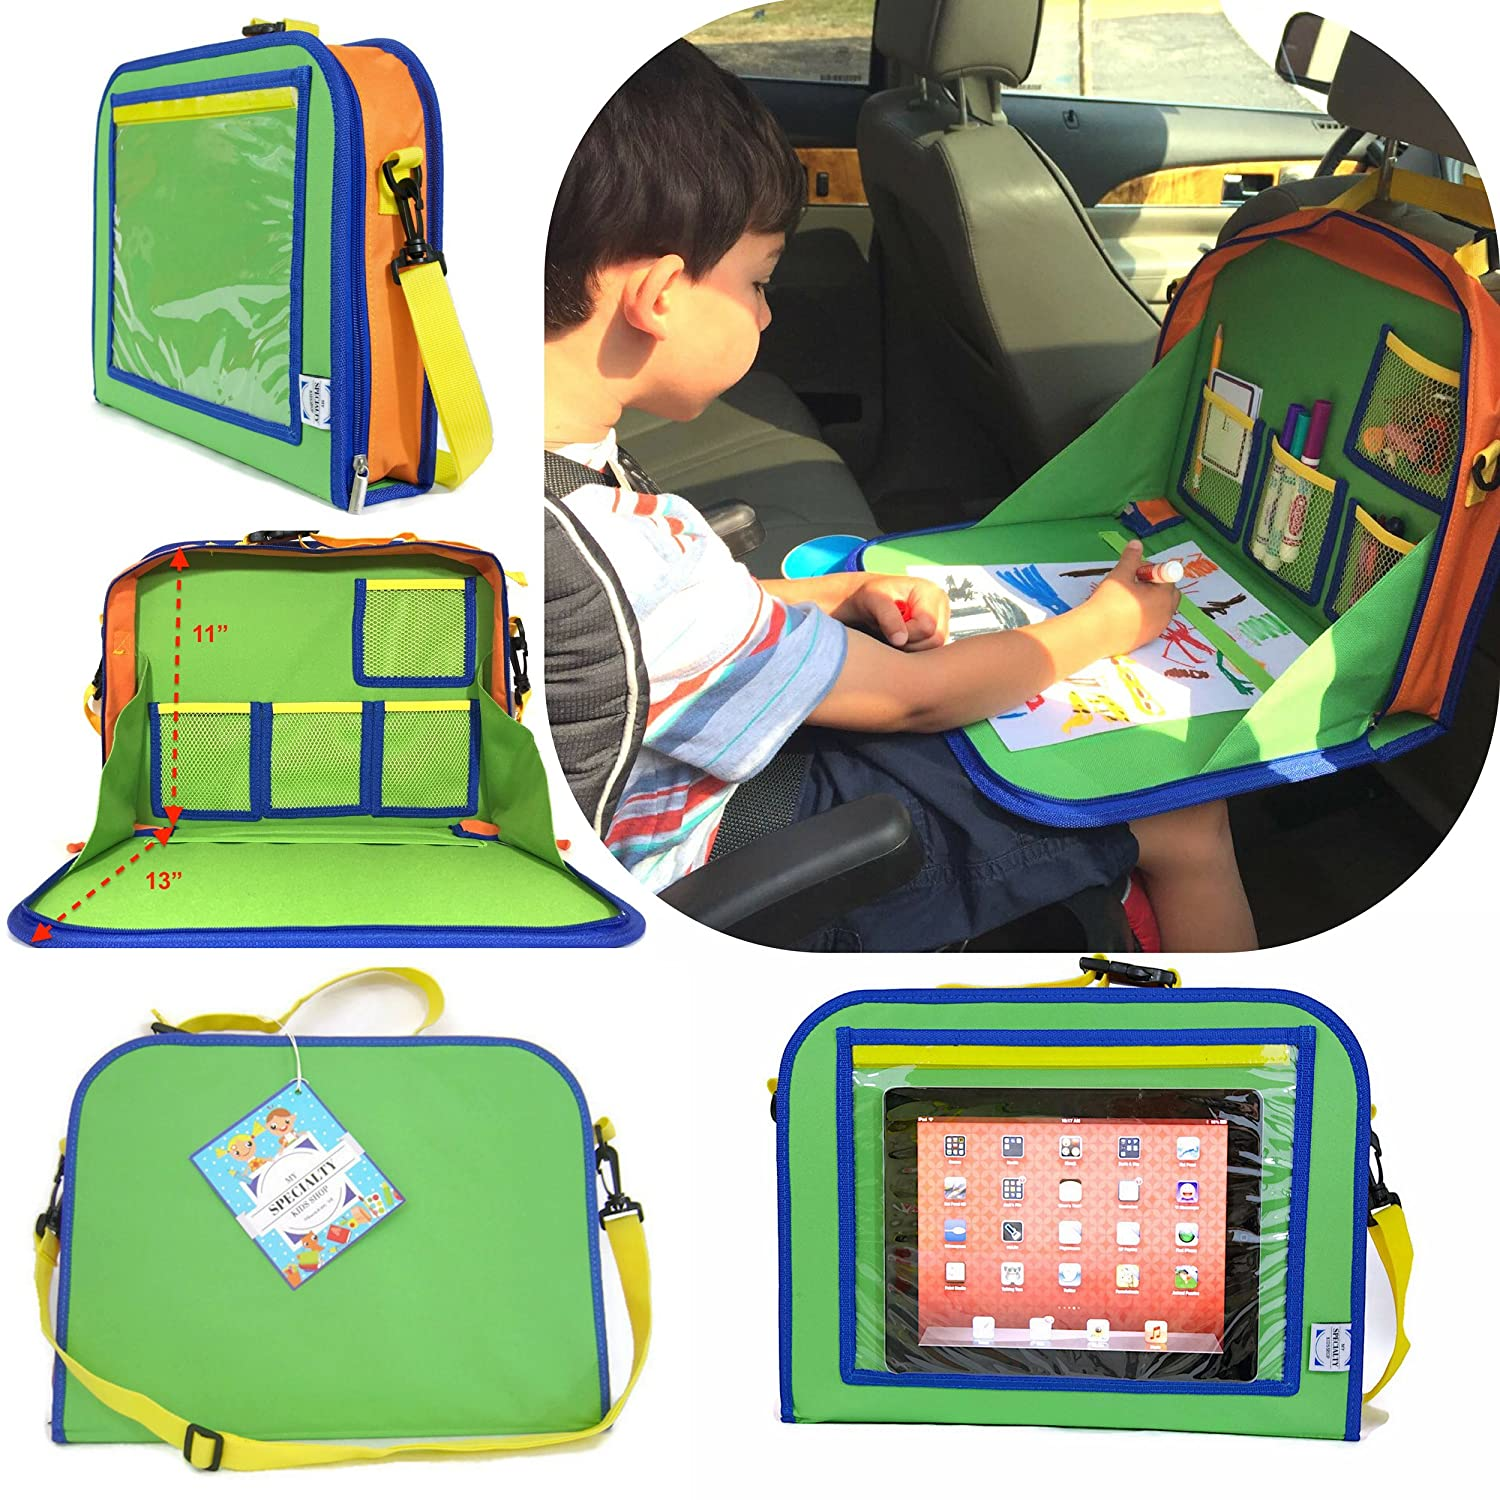 Kids Backseat Organizer Holds Crayons Markers an iPad Kindle or Other Tablet. Great for Road Trips and Travel Used as a Lap Tray Writing Surface or as...